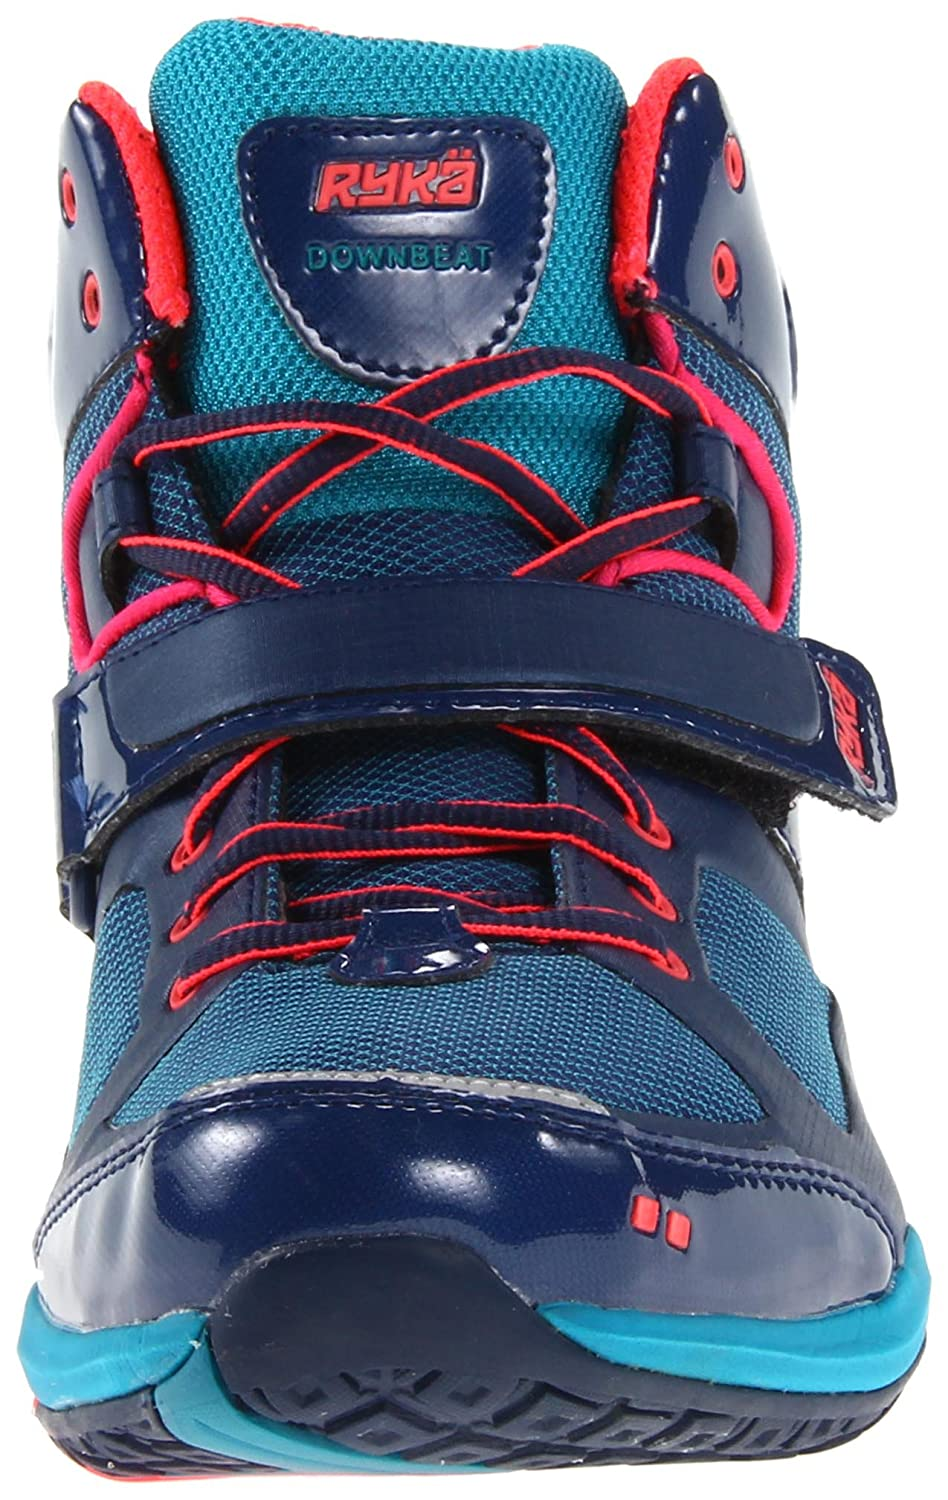 Reebok high top aerobic shoes. Wore these to Jazzercise